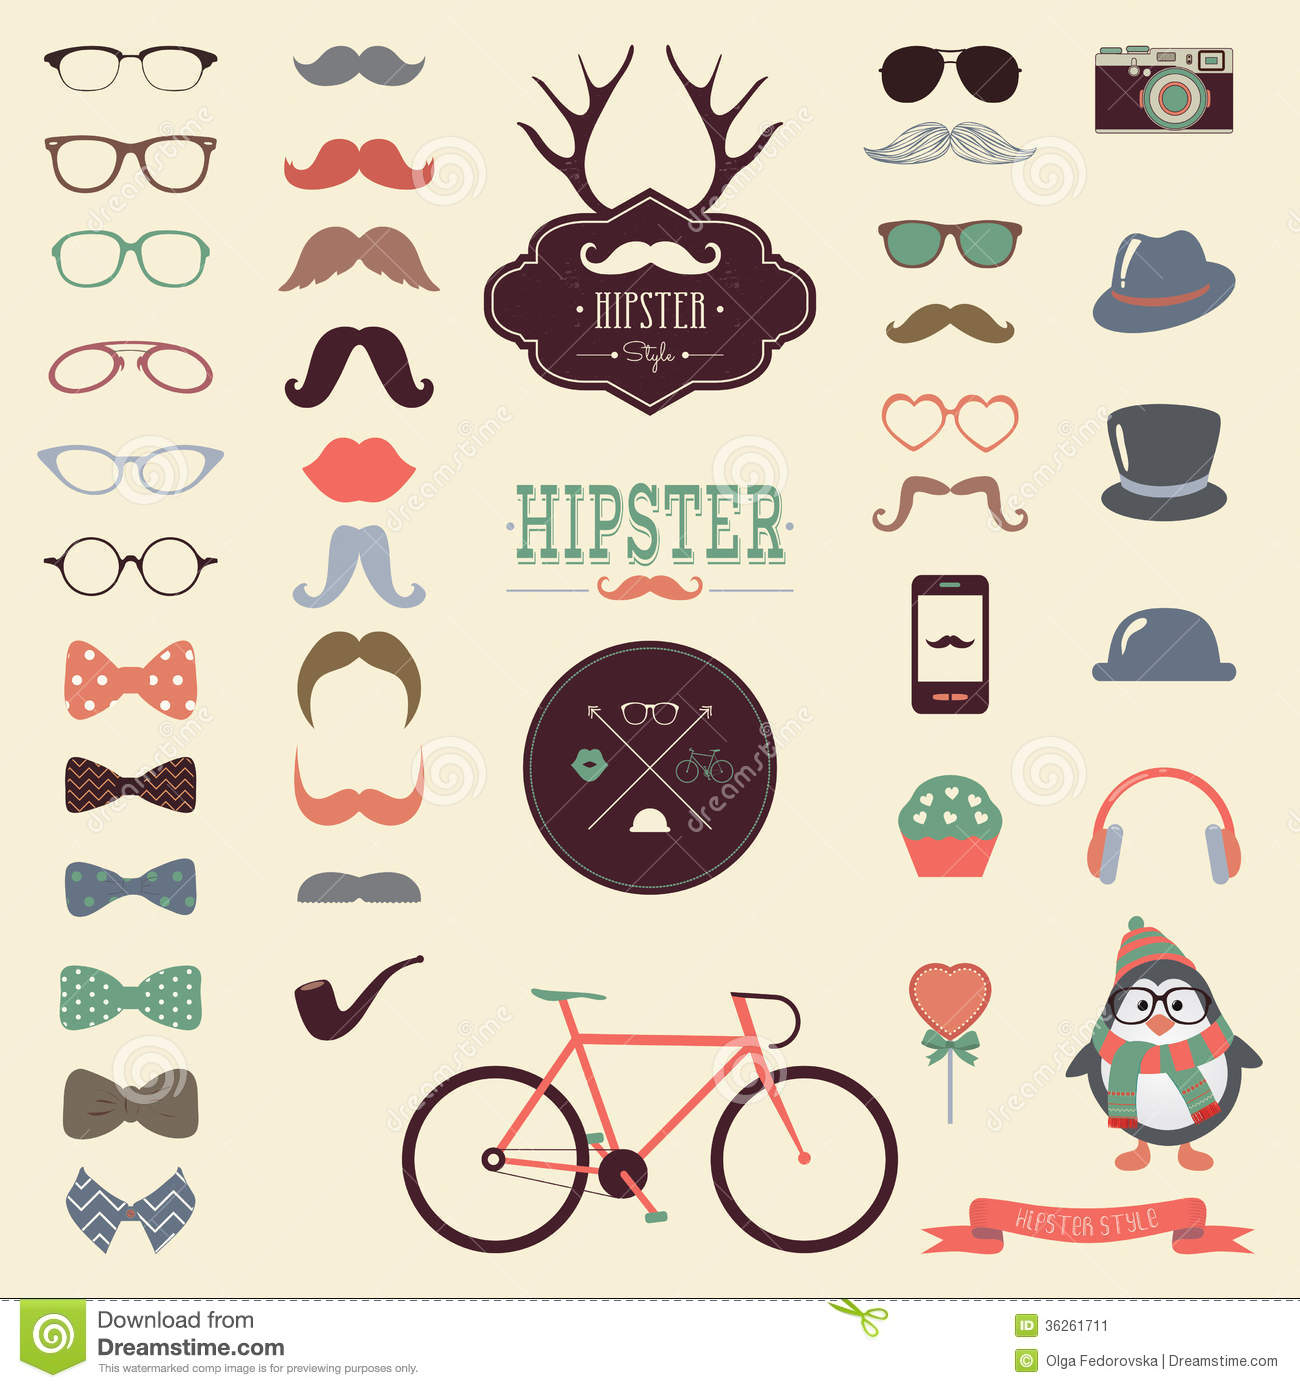 Stock Image Hipster Retro Vintage Icon Set Colorful Vector Image36261711 on mid century retro